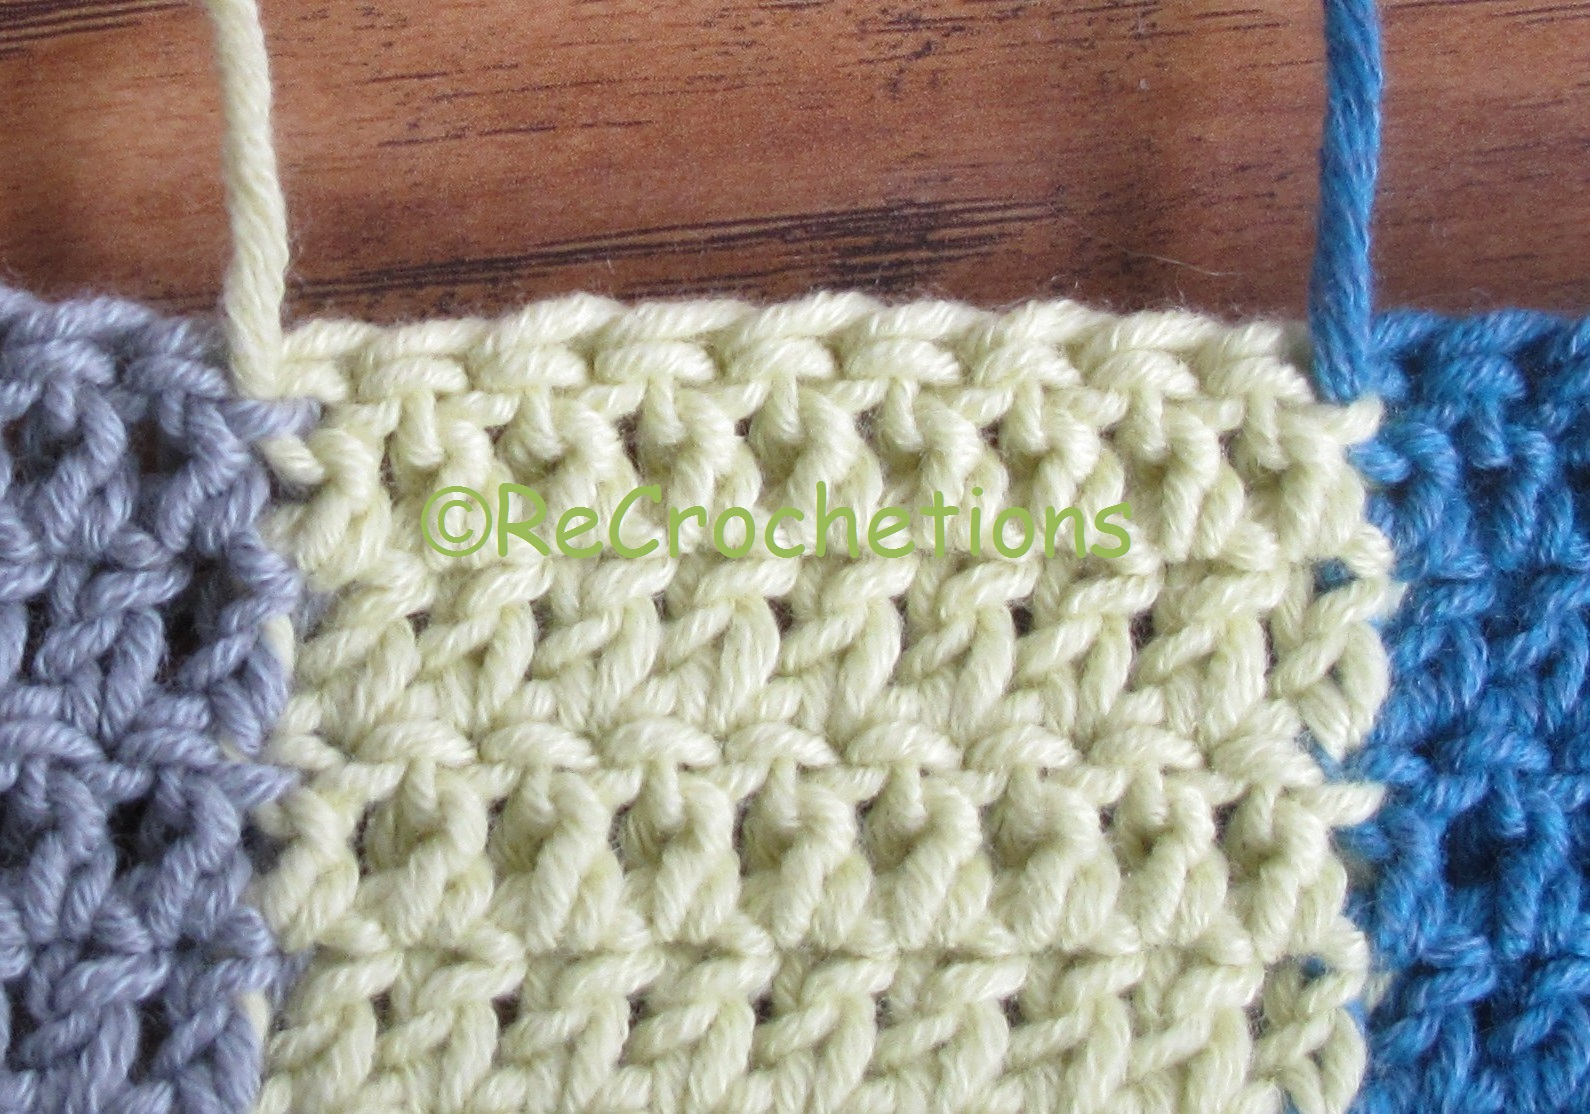 After working the first stitch in the new color, gently tighten the ...